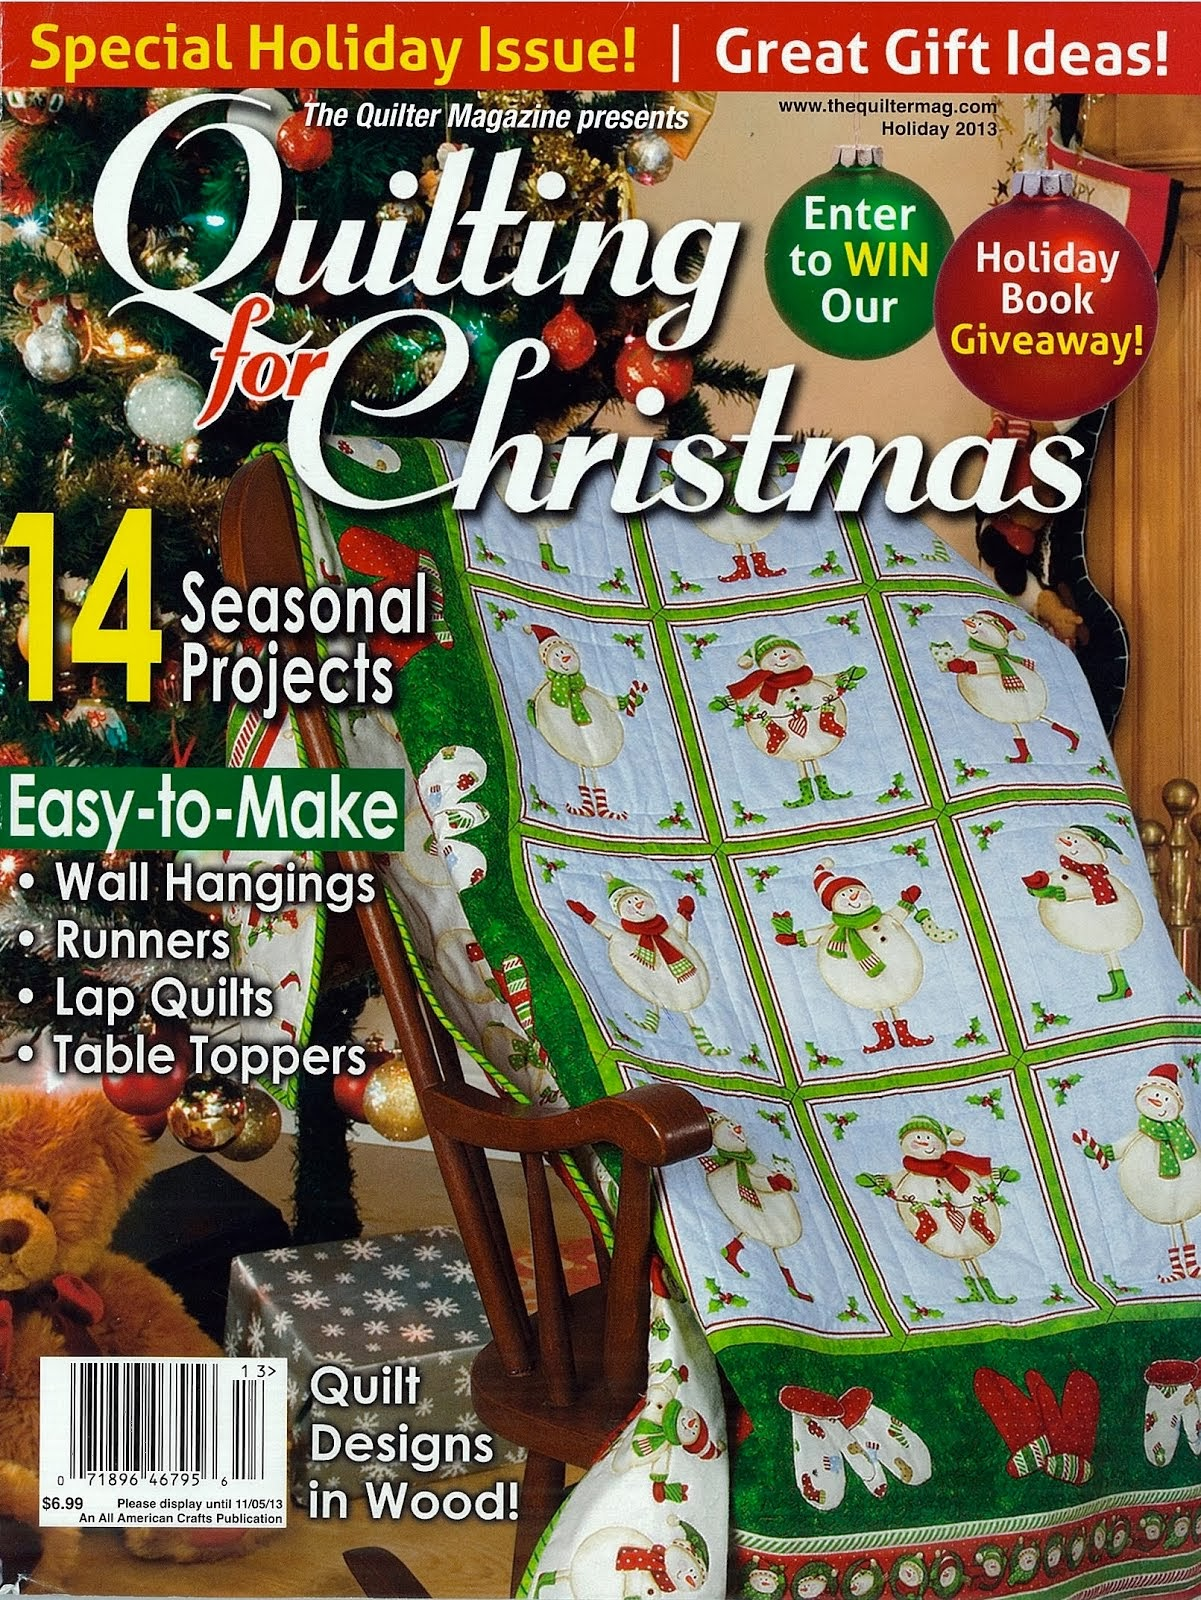 Featured In: The Quilter Magazine, Holiday 2013 issue